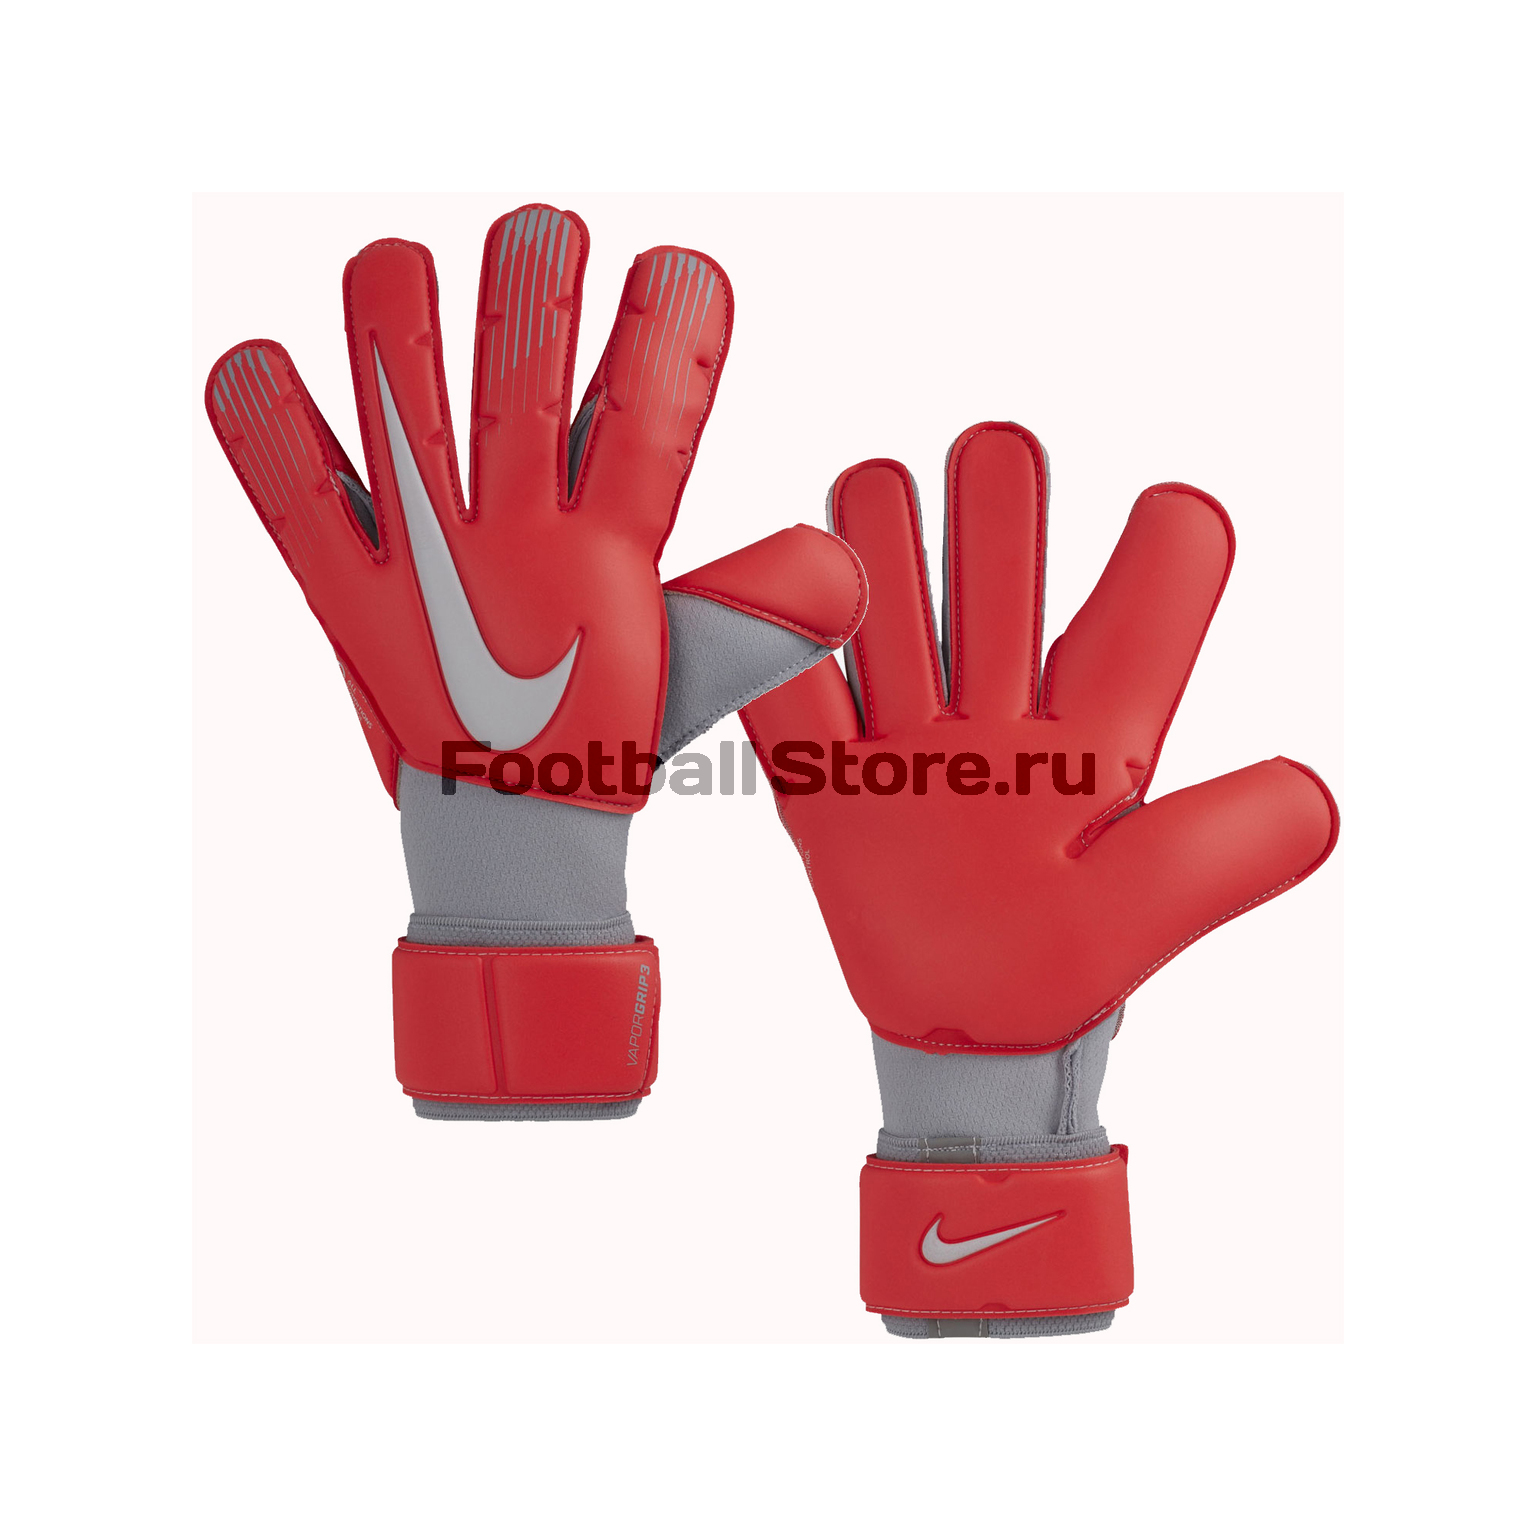 Вратарские перчатки Nike Vapor Grip3 GS0352-671 спортинвентарь nike чехол для iphone 6 на руку nike vapor flash arm band 2 0 n rn 50 078 os